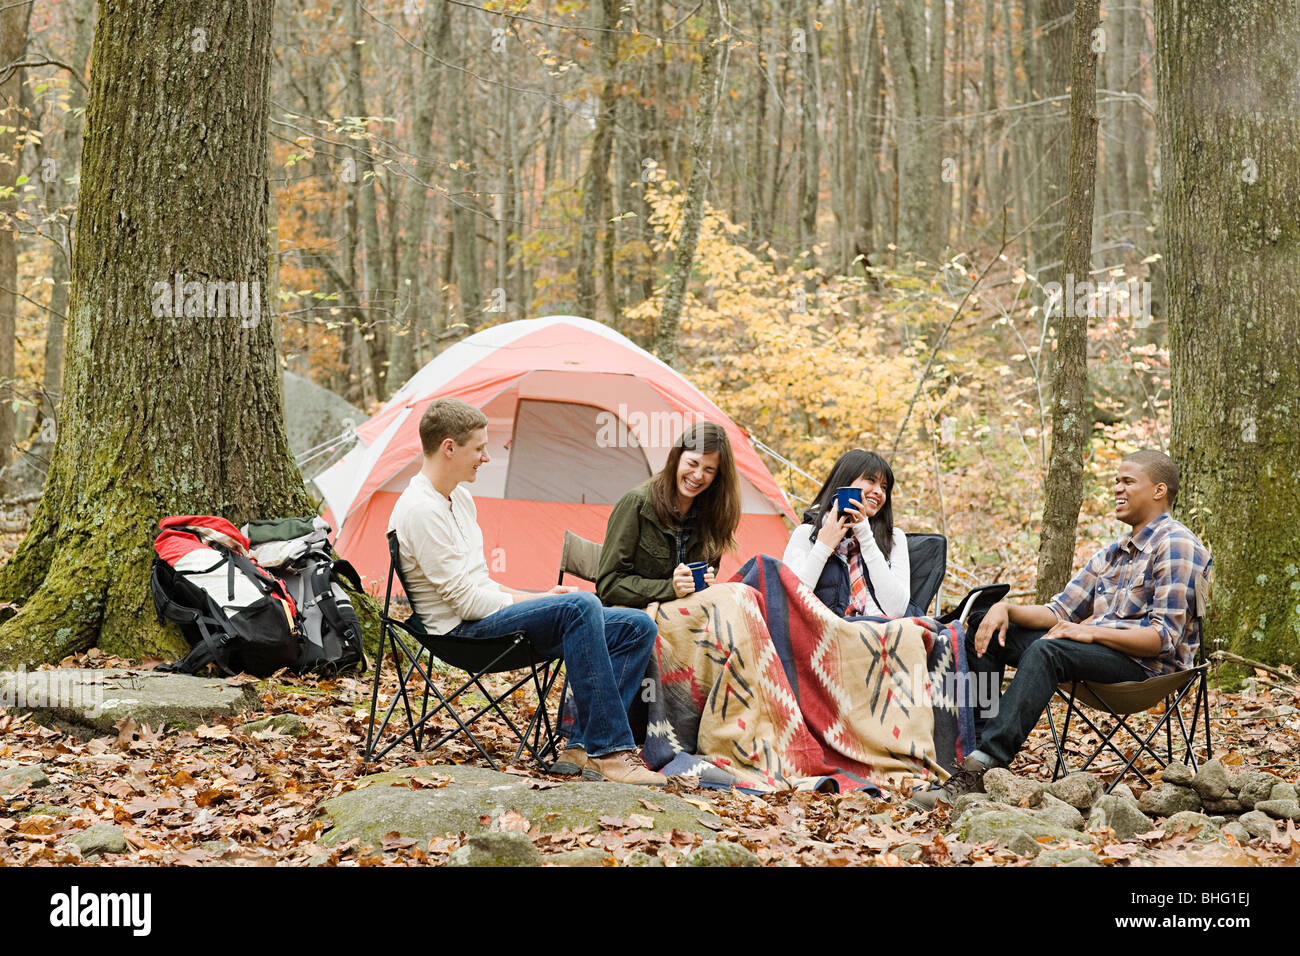 Friends at campsite - Stock Image